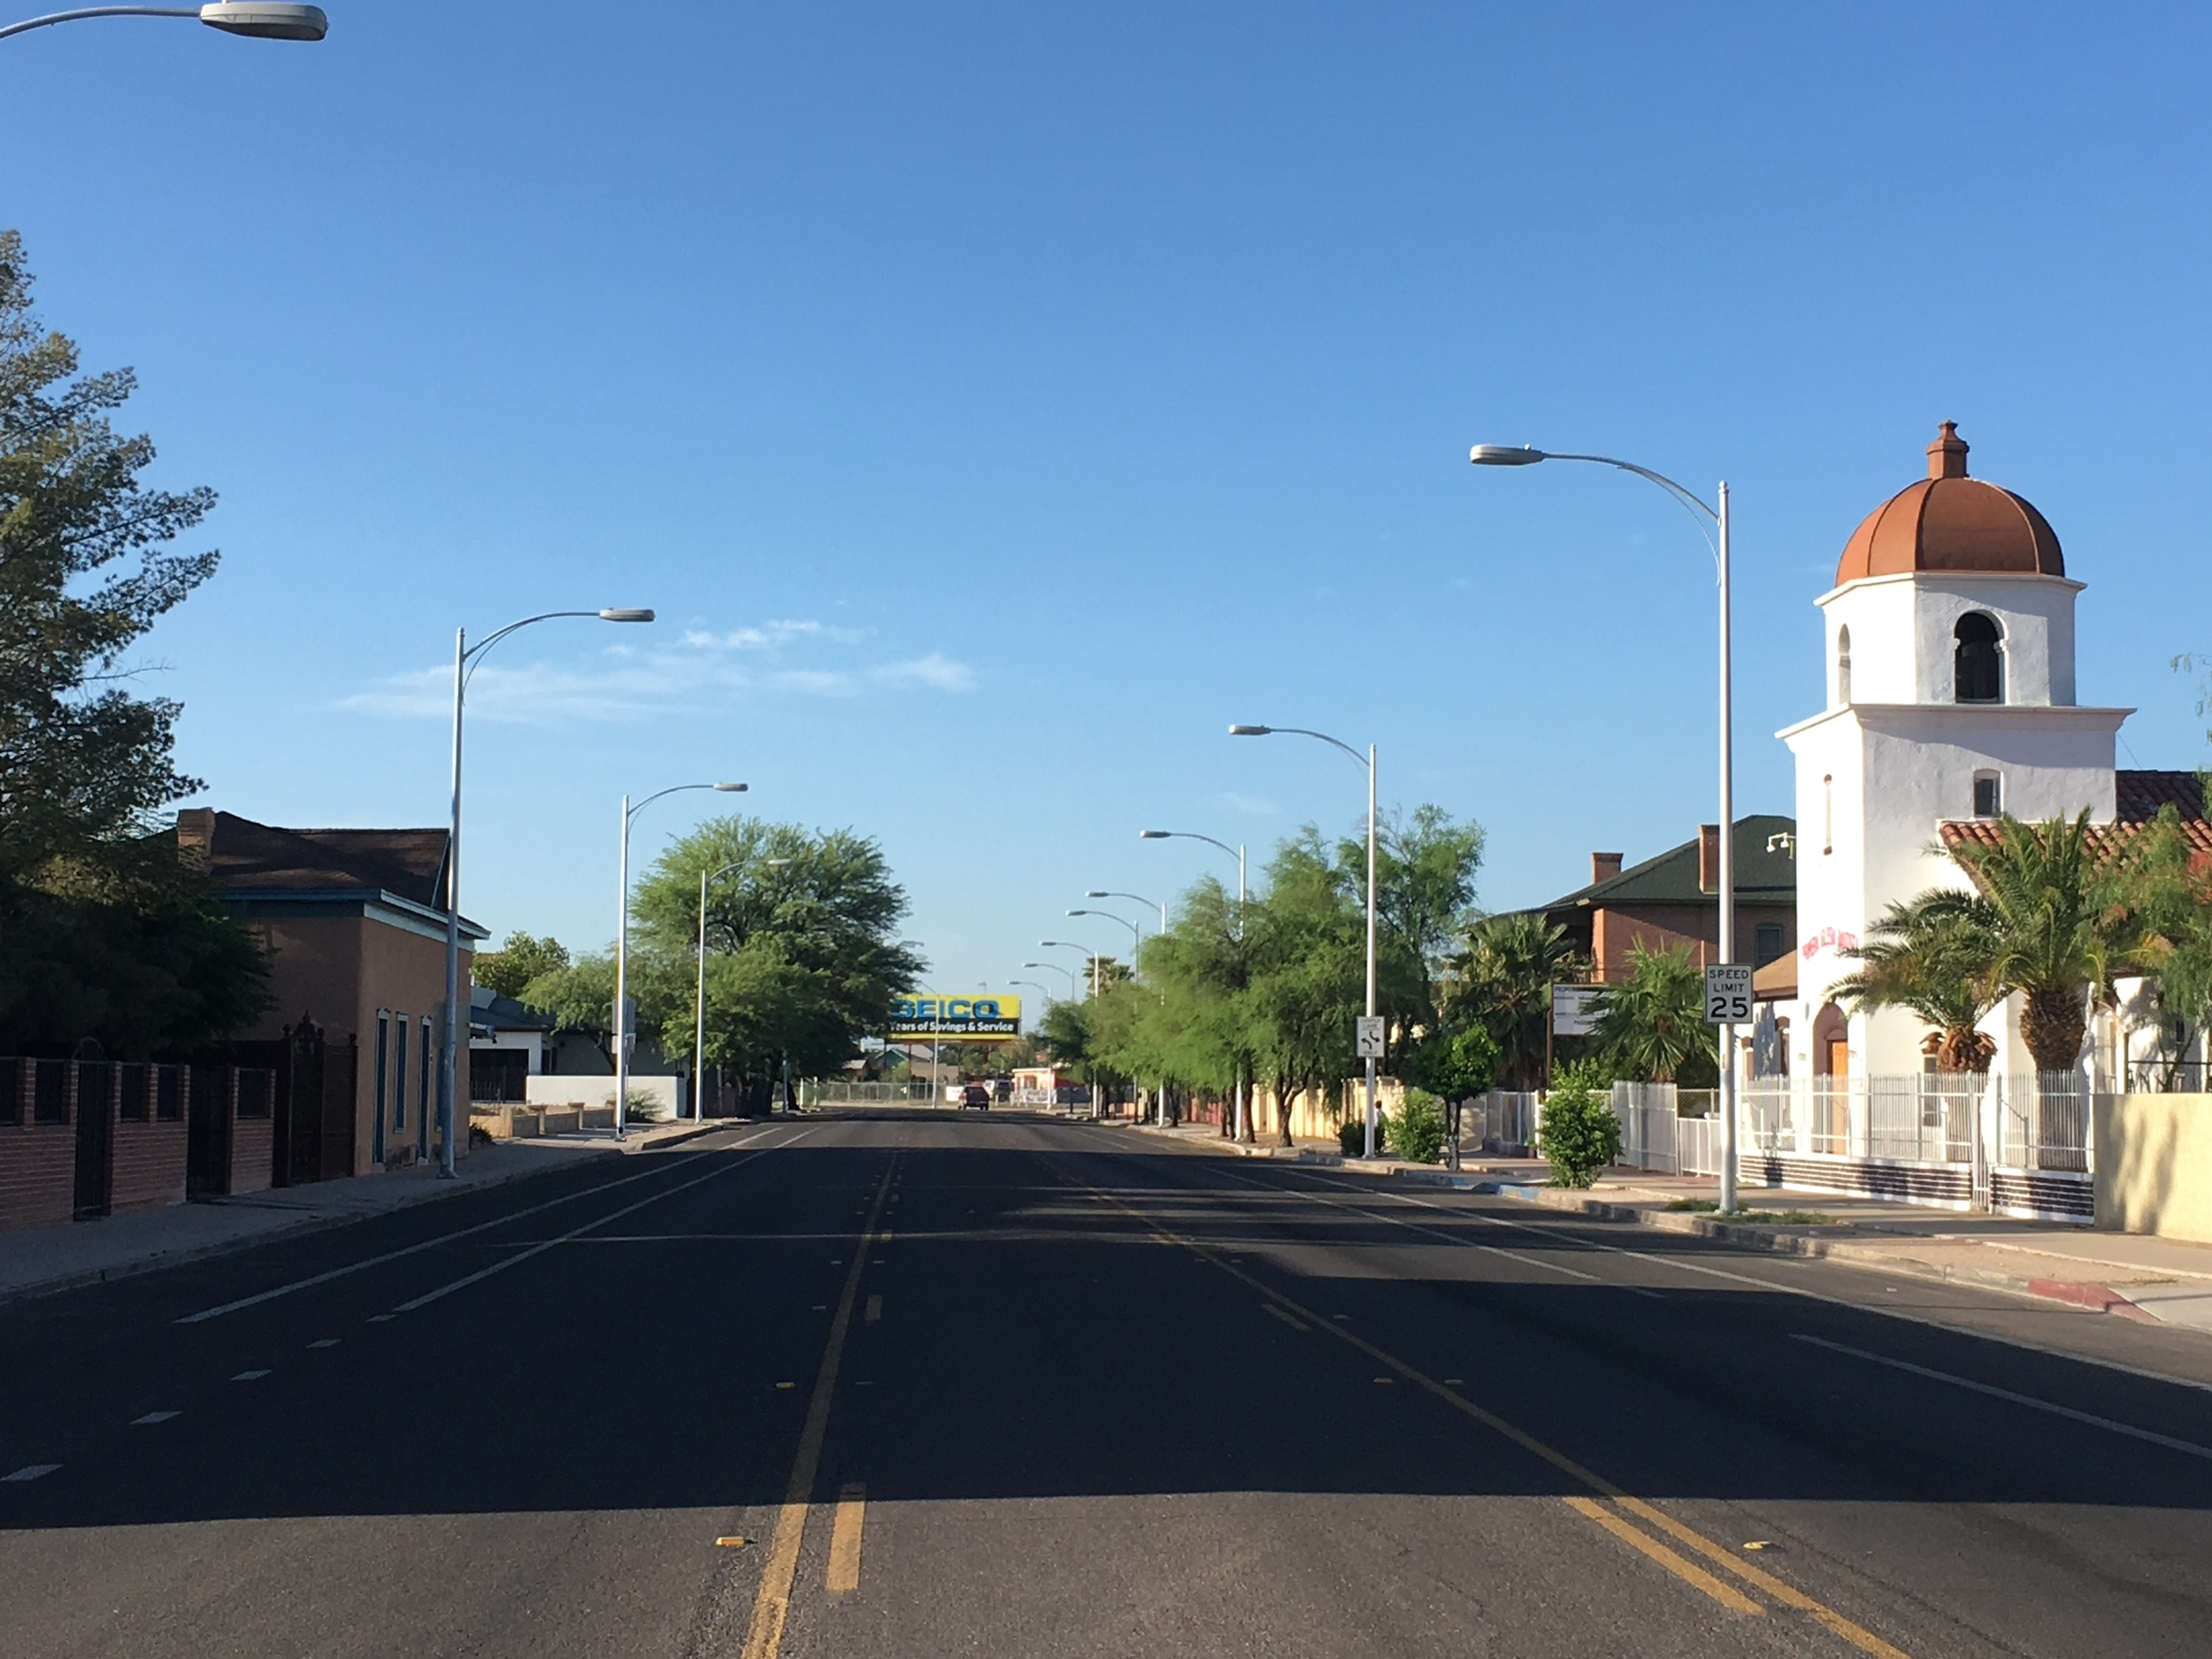 """South Stone Avenue with the Primeria Iglesia Bautista on the right. This was the """"wilderness.""""  The prominent brown adobe with blue trim on the left side was built in the 1870s and was purchased in 1878 by Carlos Ygnacio Velasco. His family lived in the back and the front was the office of his newspaper, El Fronterizo.  One of the neighborhood's most iconic buildings, the Stone Avenue synagogue, was built in 1910. You cannot see it in this photo, but it's on the right side in the next block south. Now called the Jewish History Museum, it was the first synagogue in Arizona."""